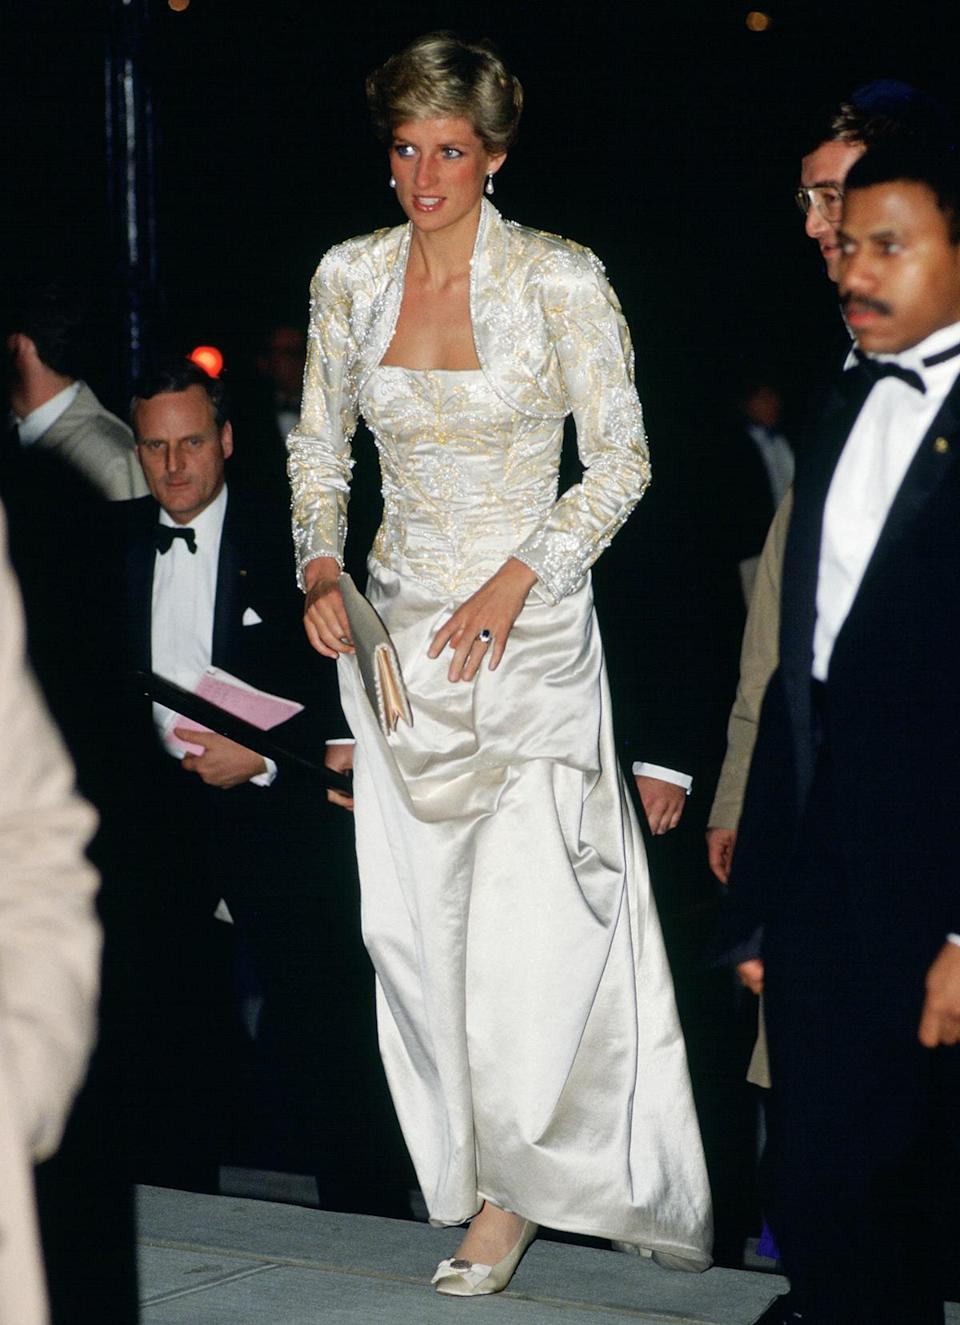 """<p>""""When Diana entered the box, radiant in a magnificent long white dress with a matching bolero jacket covered in jewels, a gasp went up from the crowd,"""" Karen Brooks Hopkins, President Emerita of BAM, told PEOPLE of <a href=""""https://people.com/royals/princess-diana-new-york-city-opera-night-recreated-the-crown-first-hand-account/"""" rel=""""nofollow noopener"""" target=""""_blank"""" data-ylk=""""slk:Princess Diana's 1989 trip to the opera"""" class=""""link rapid-noclick-resp"""">Princess Diana's 1989 trip to the opera</a> while visiting N.Y.C. in 1989. </p>"""